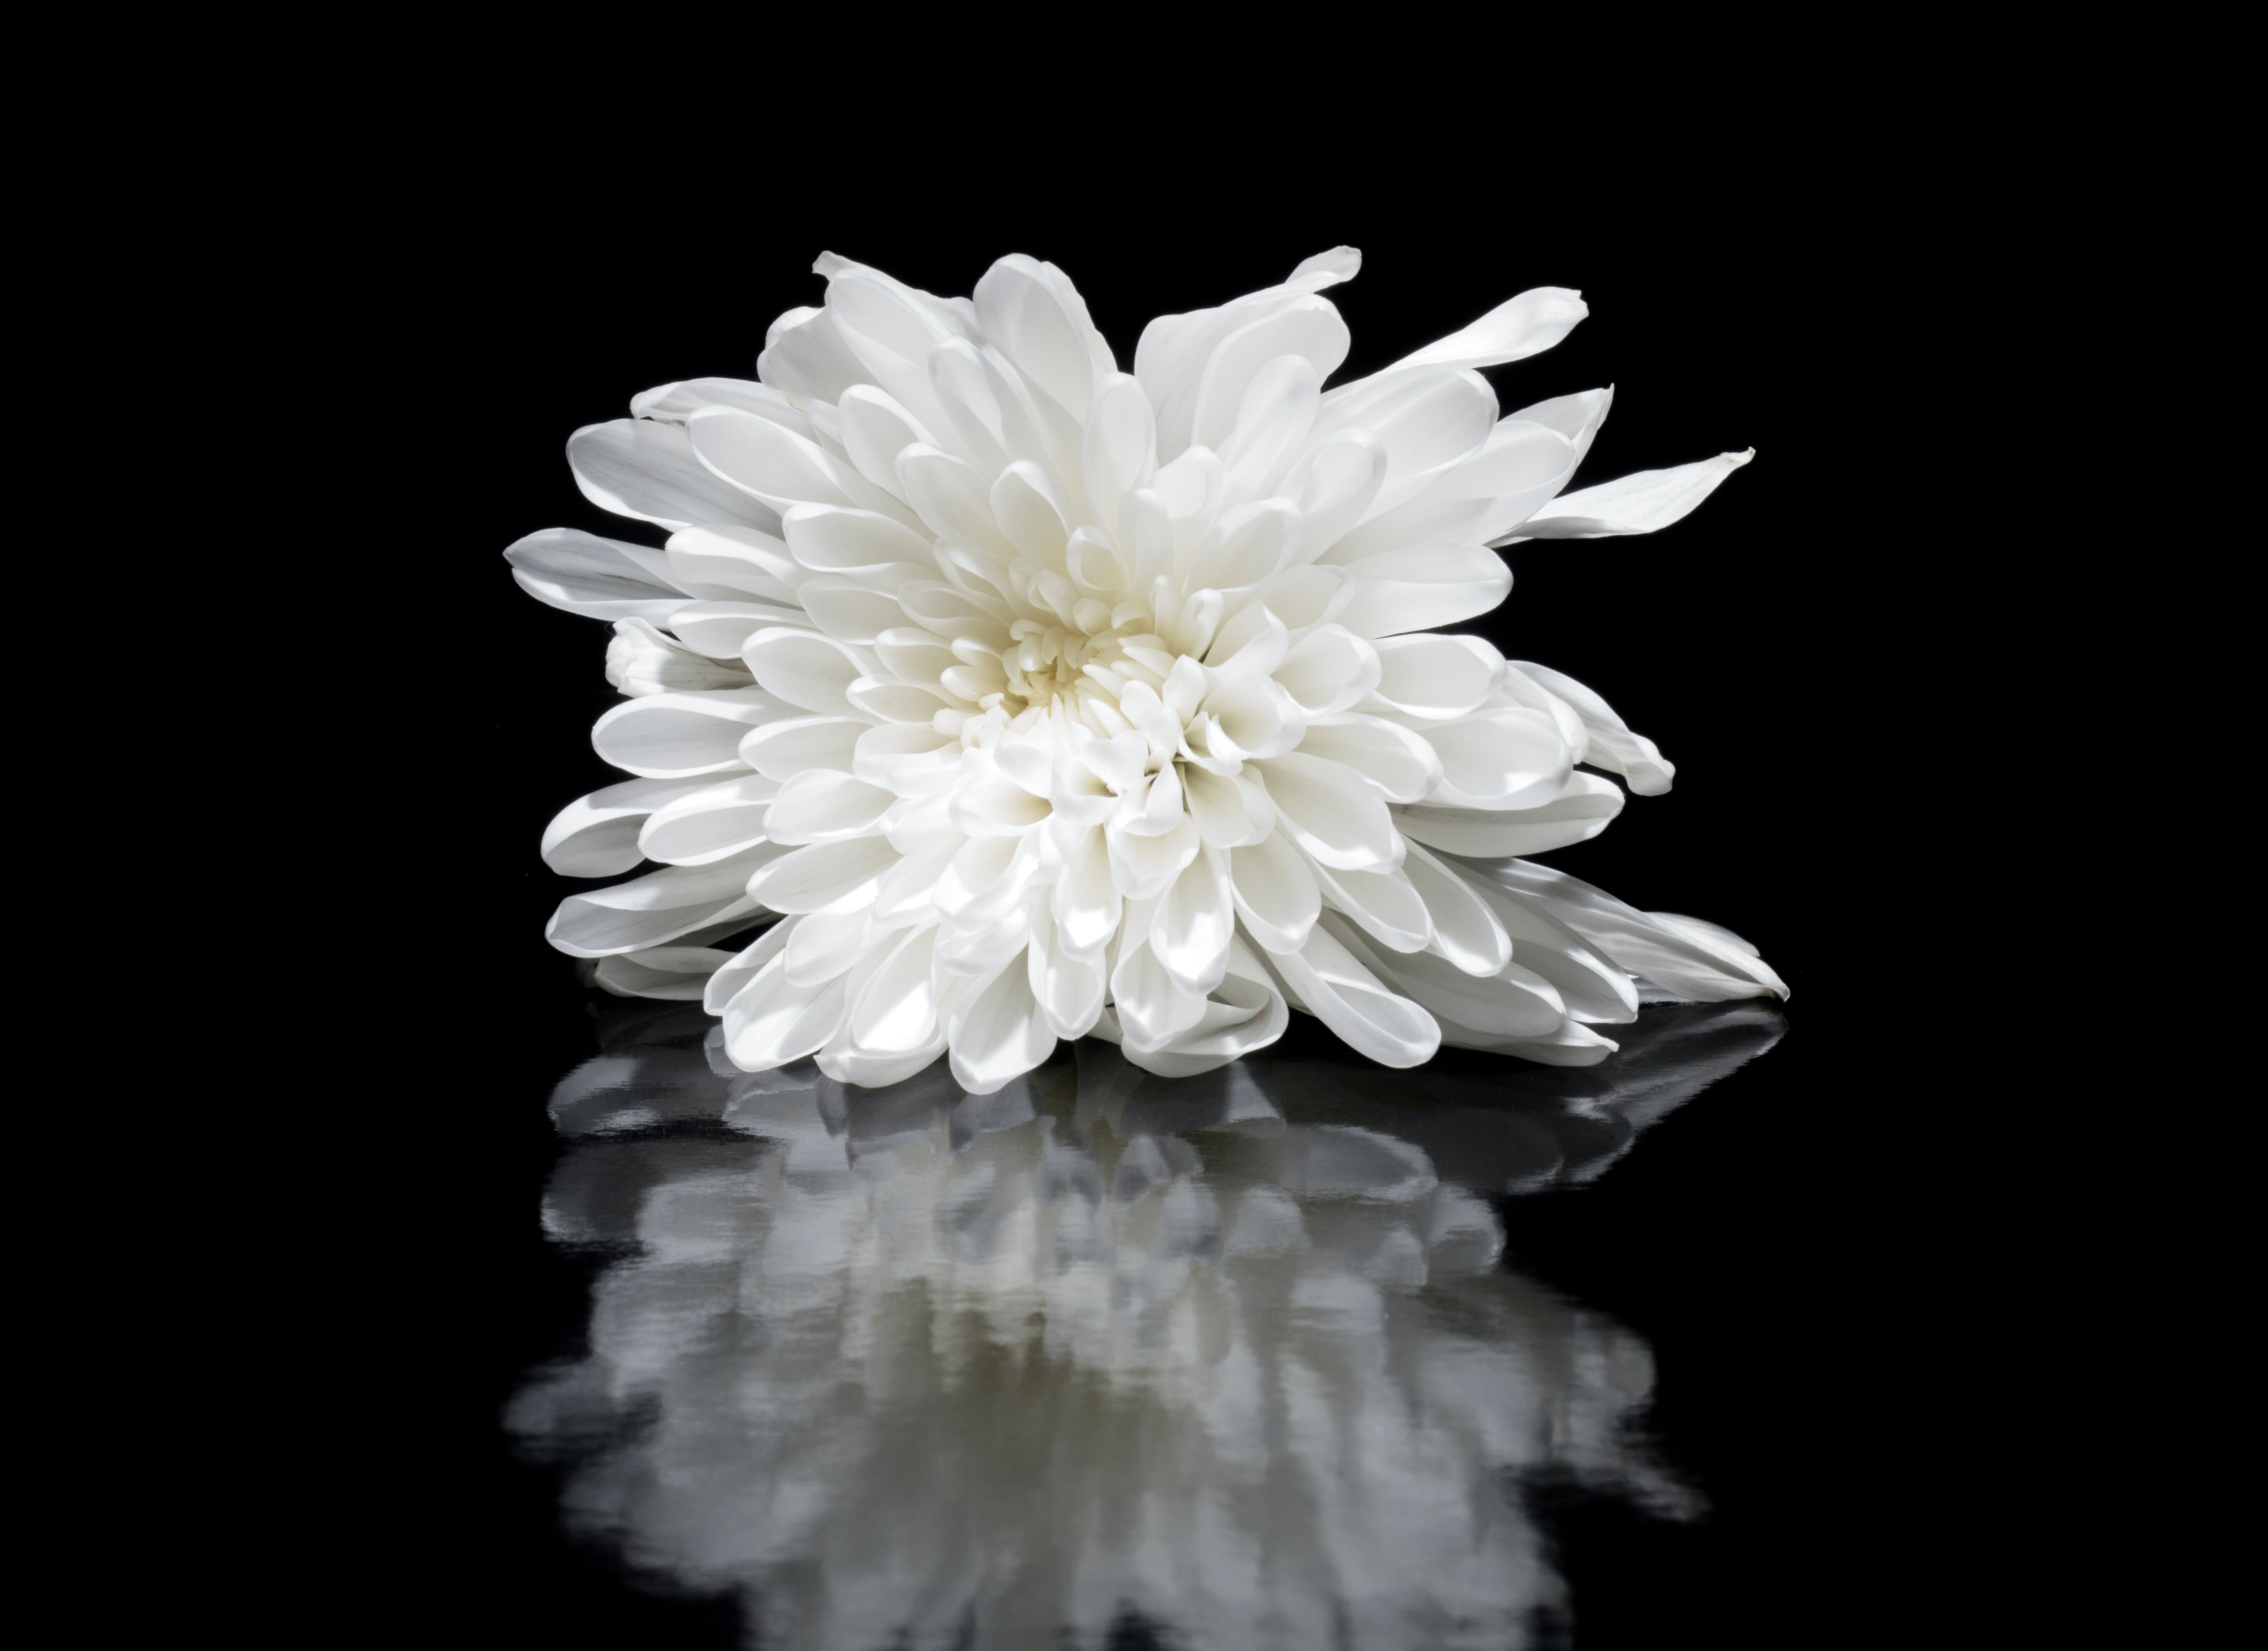 Shallow Focus Photography of White Flower Reflected on Mirror Surface